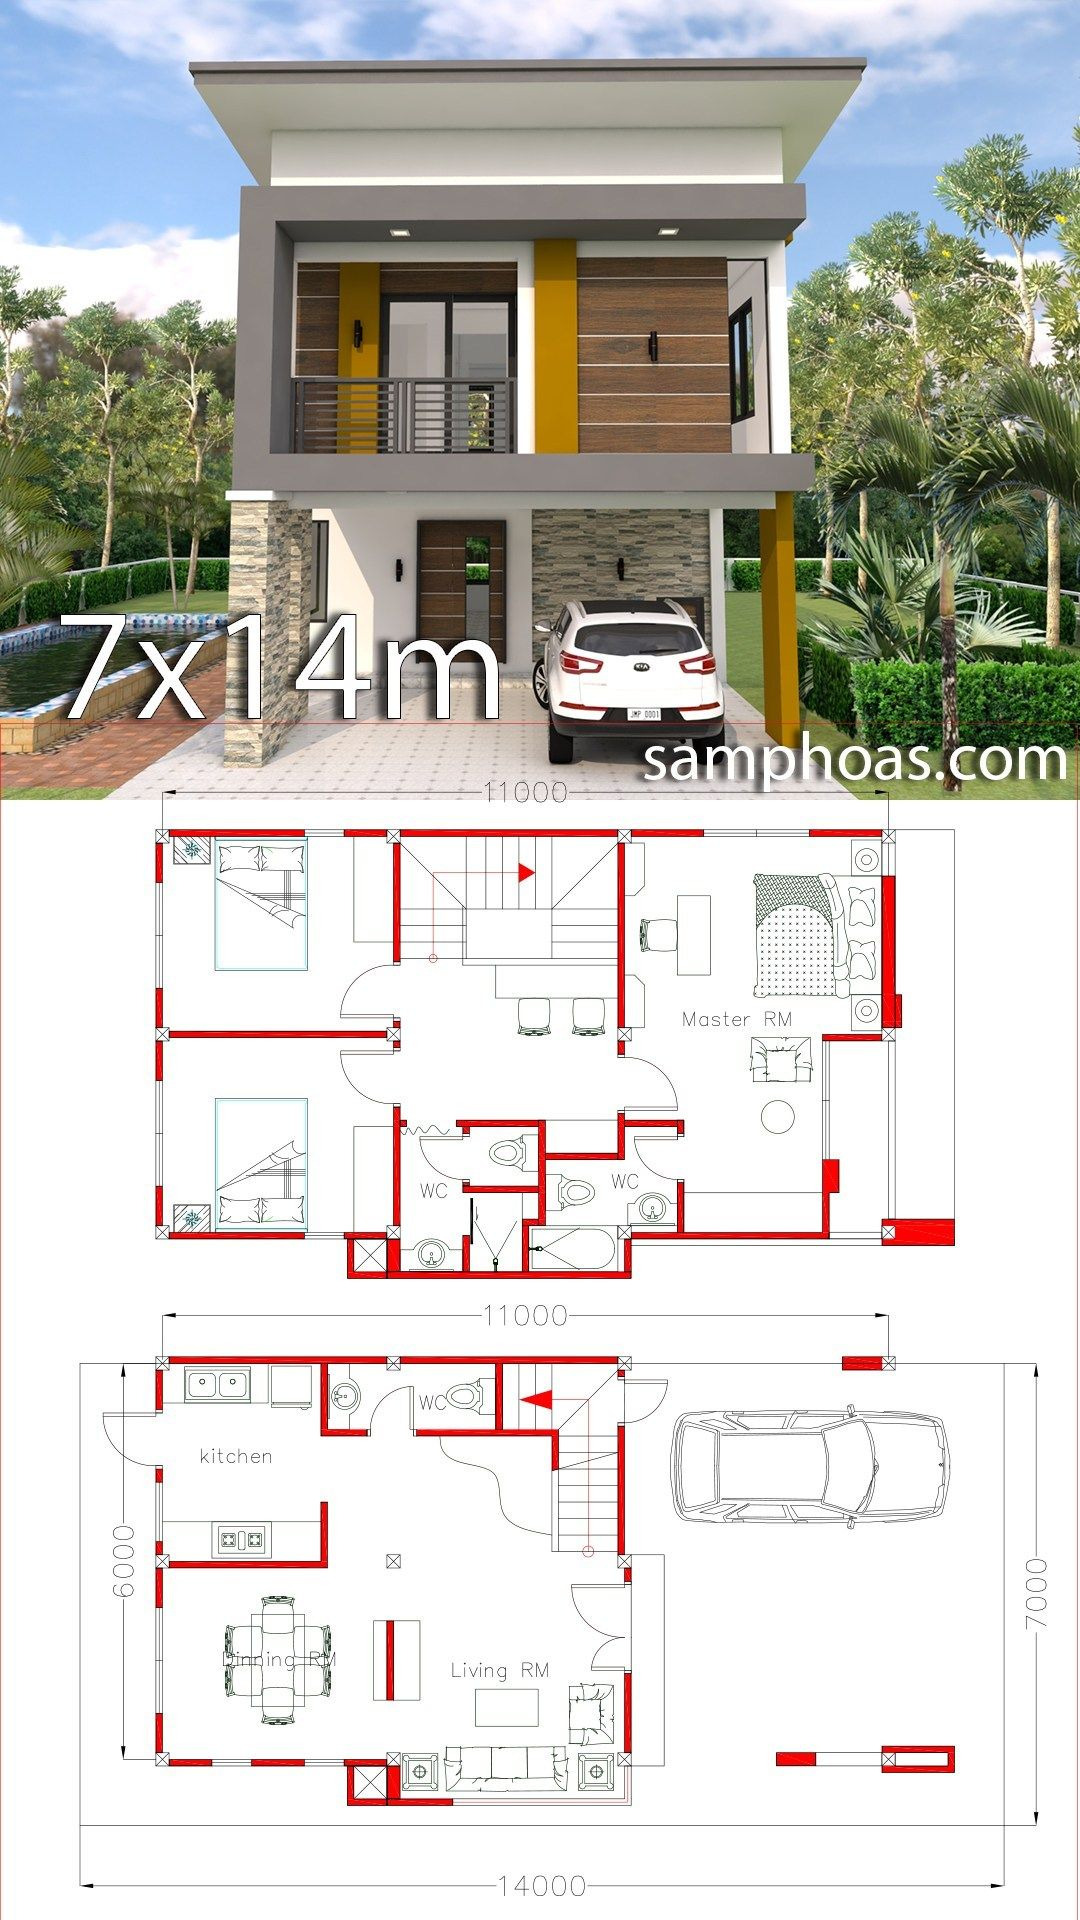 Simple Modern House Plans Photos Beautiful Small Home Design Plan 6x11m with 3 Bedrooms